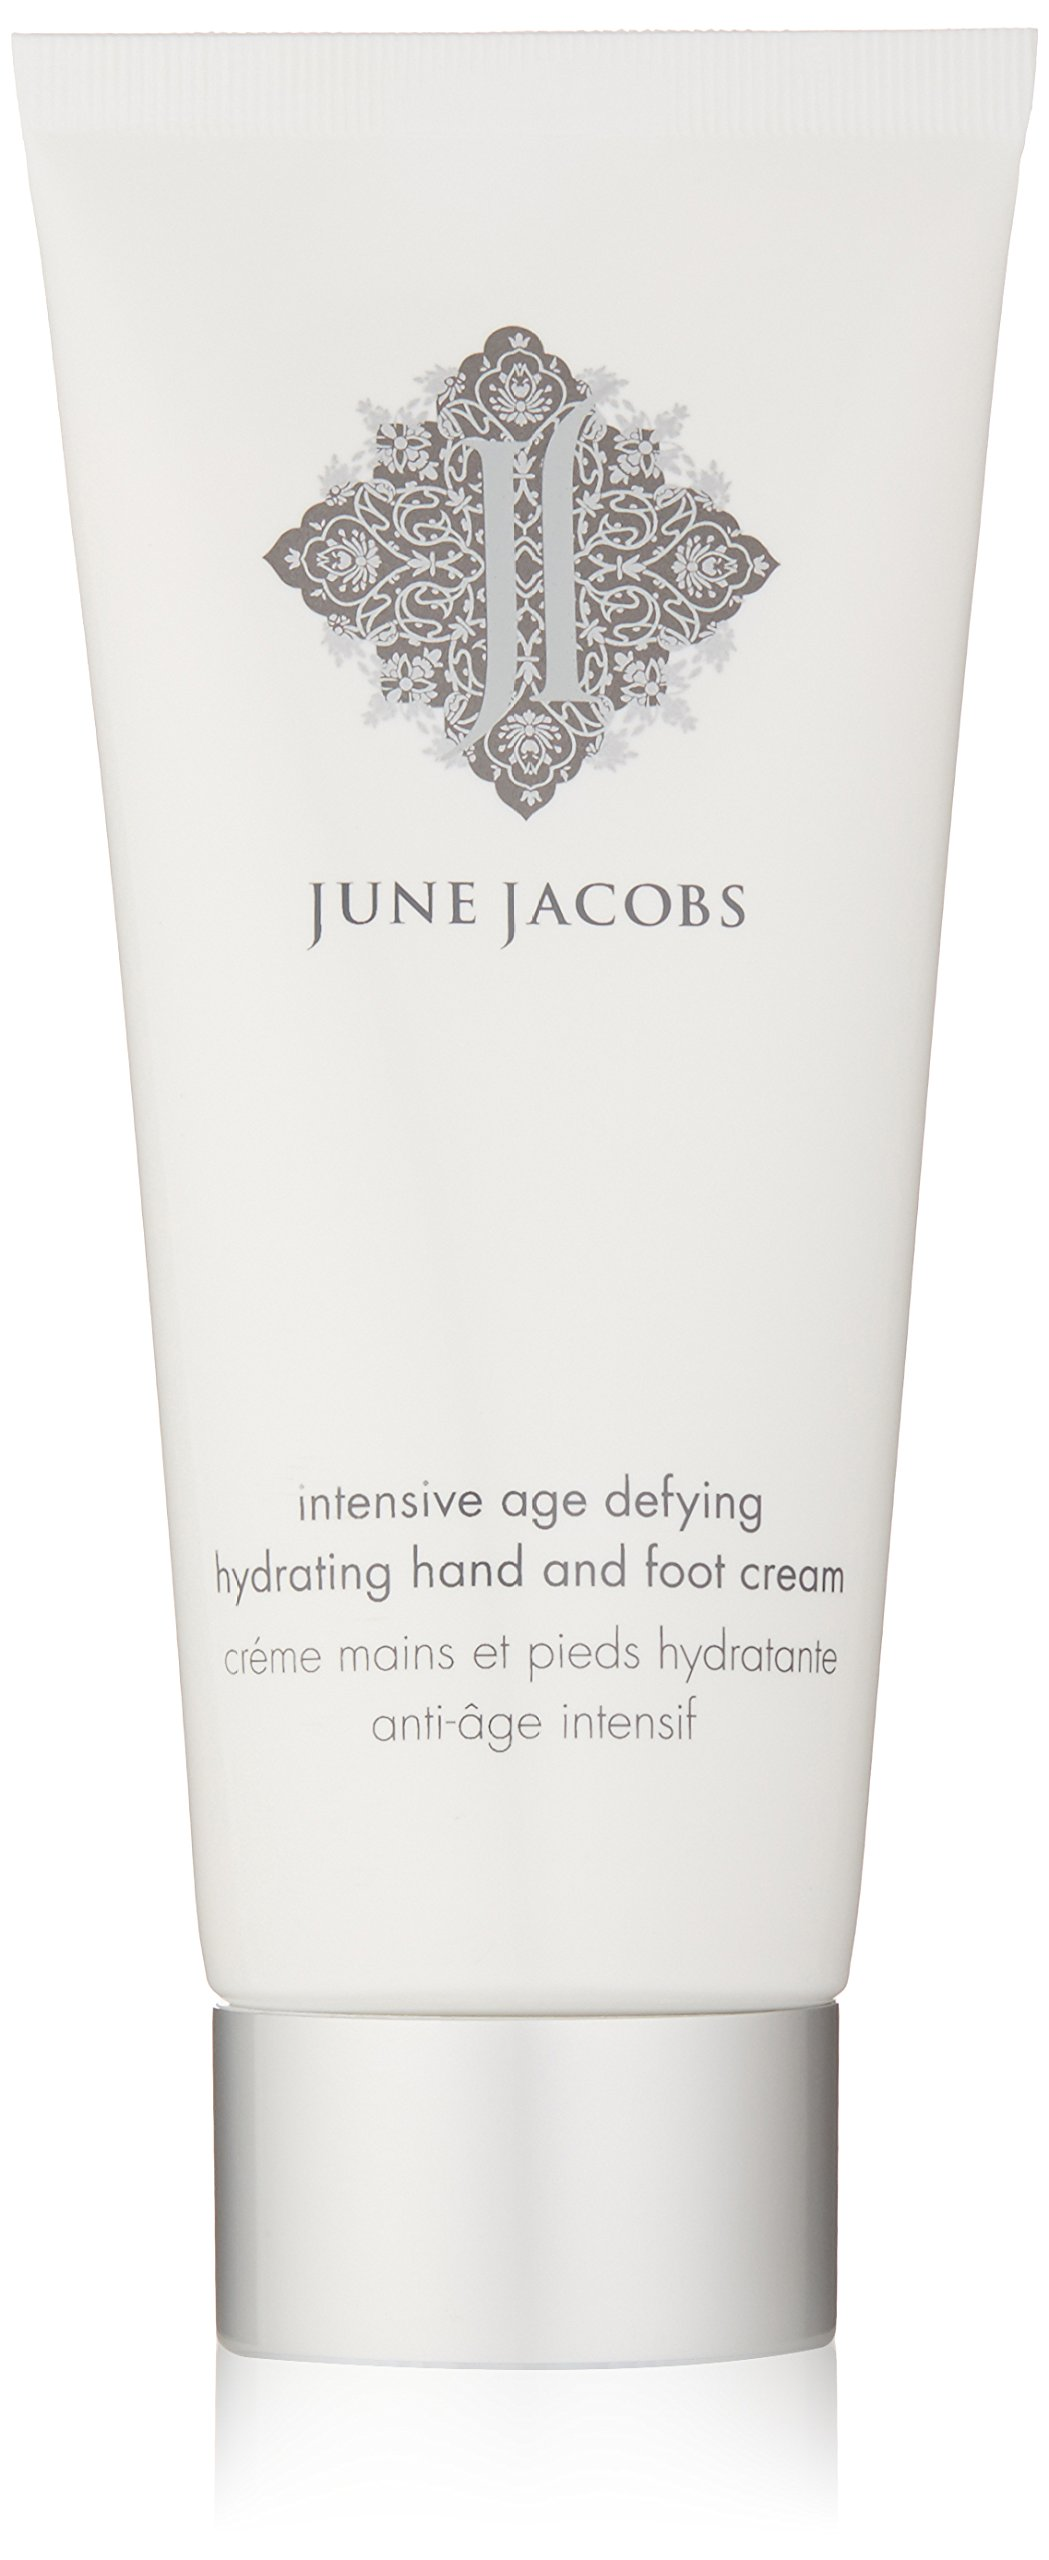 June Jacobs Hydrating Hand and Foot Cream, 3.4 Fl Oz